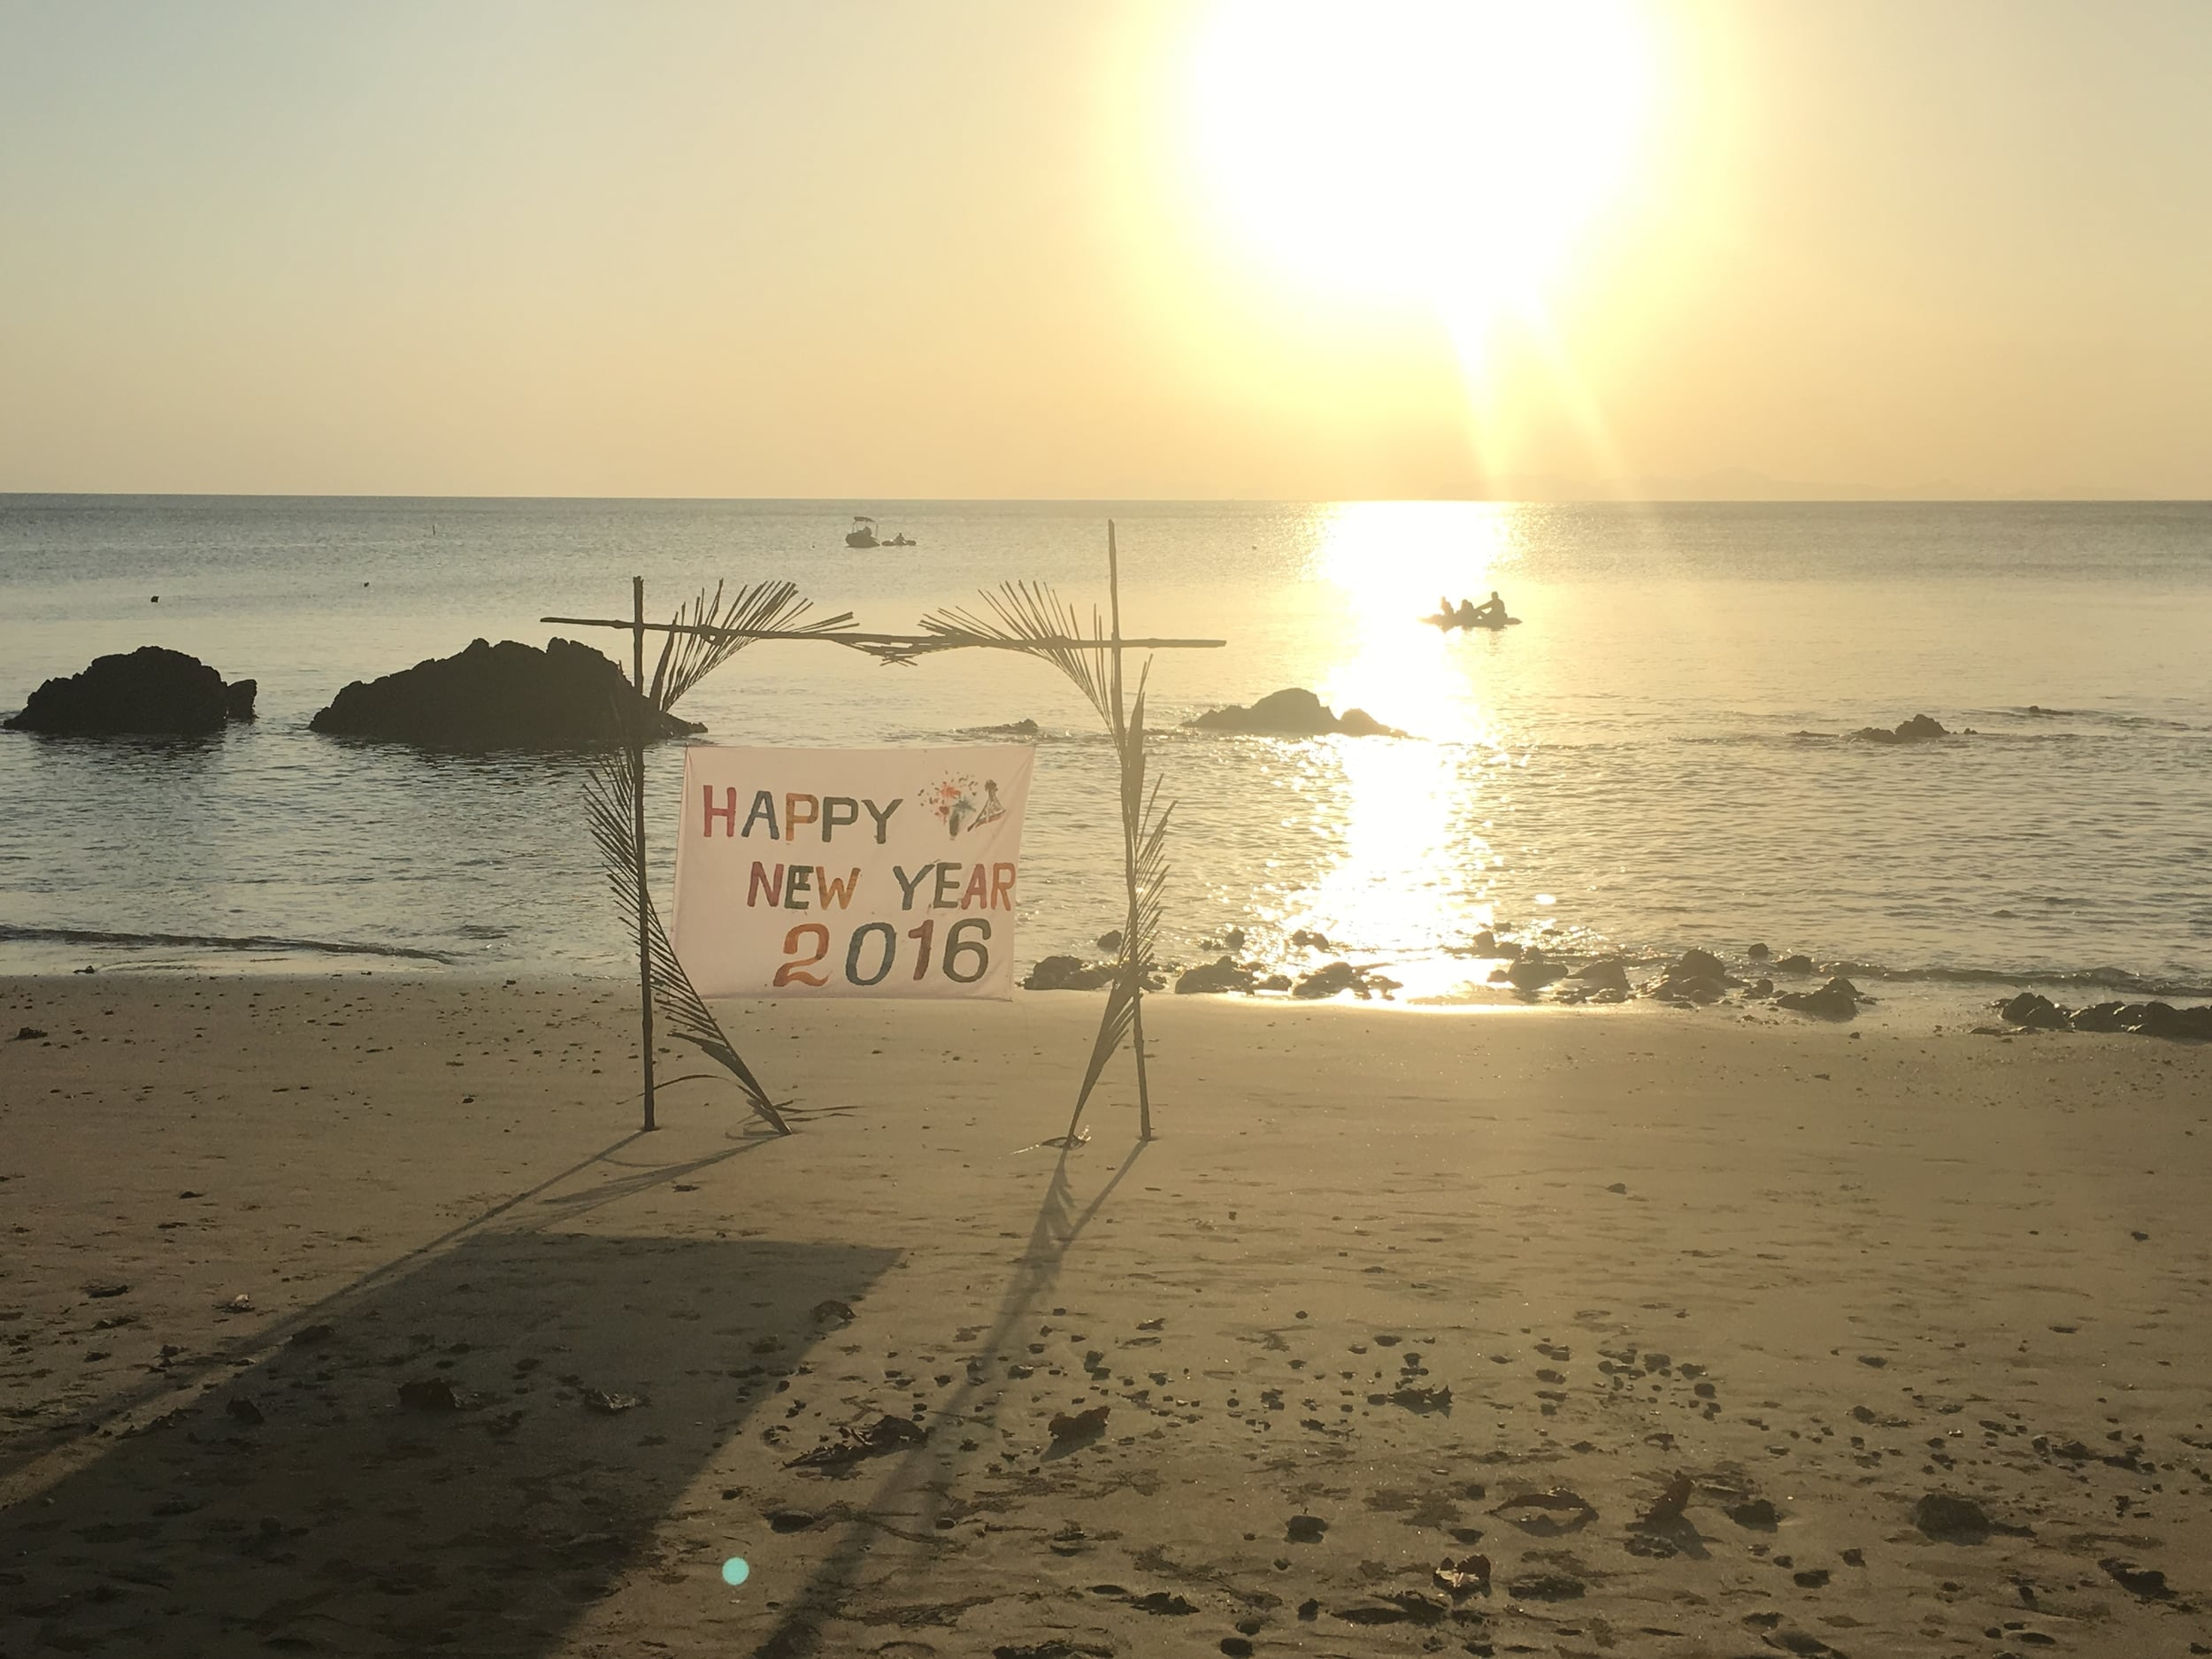 Happy New Year from Koh Jum, Thailand!